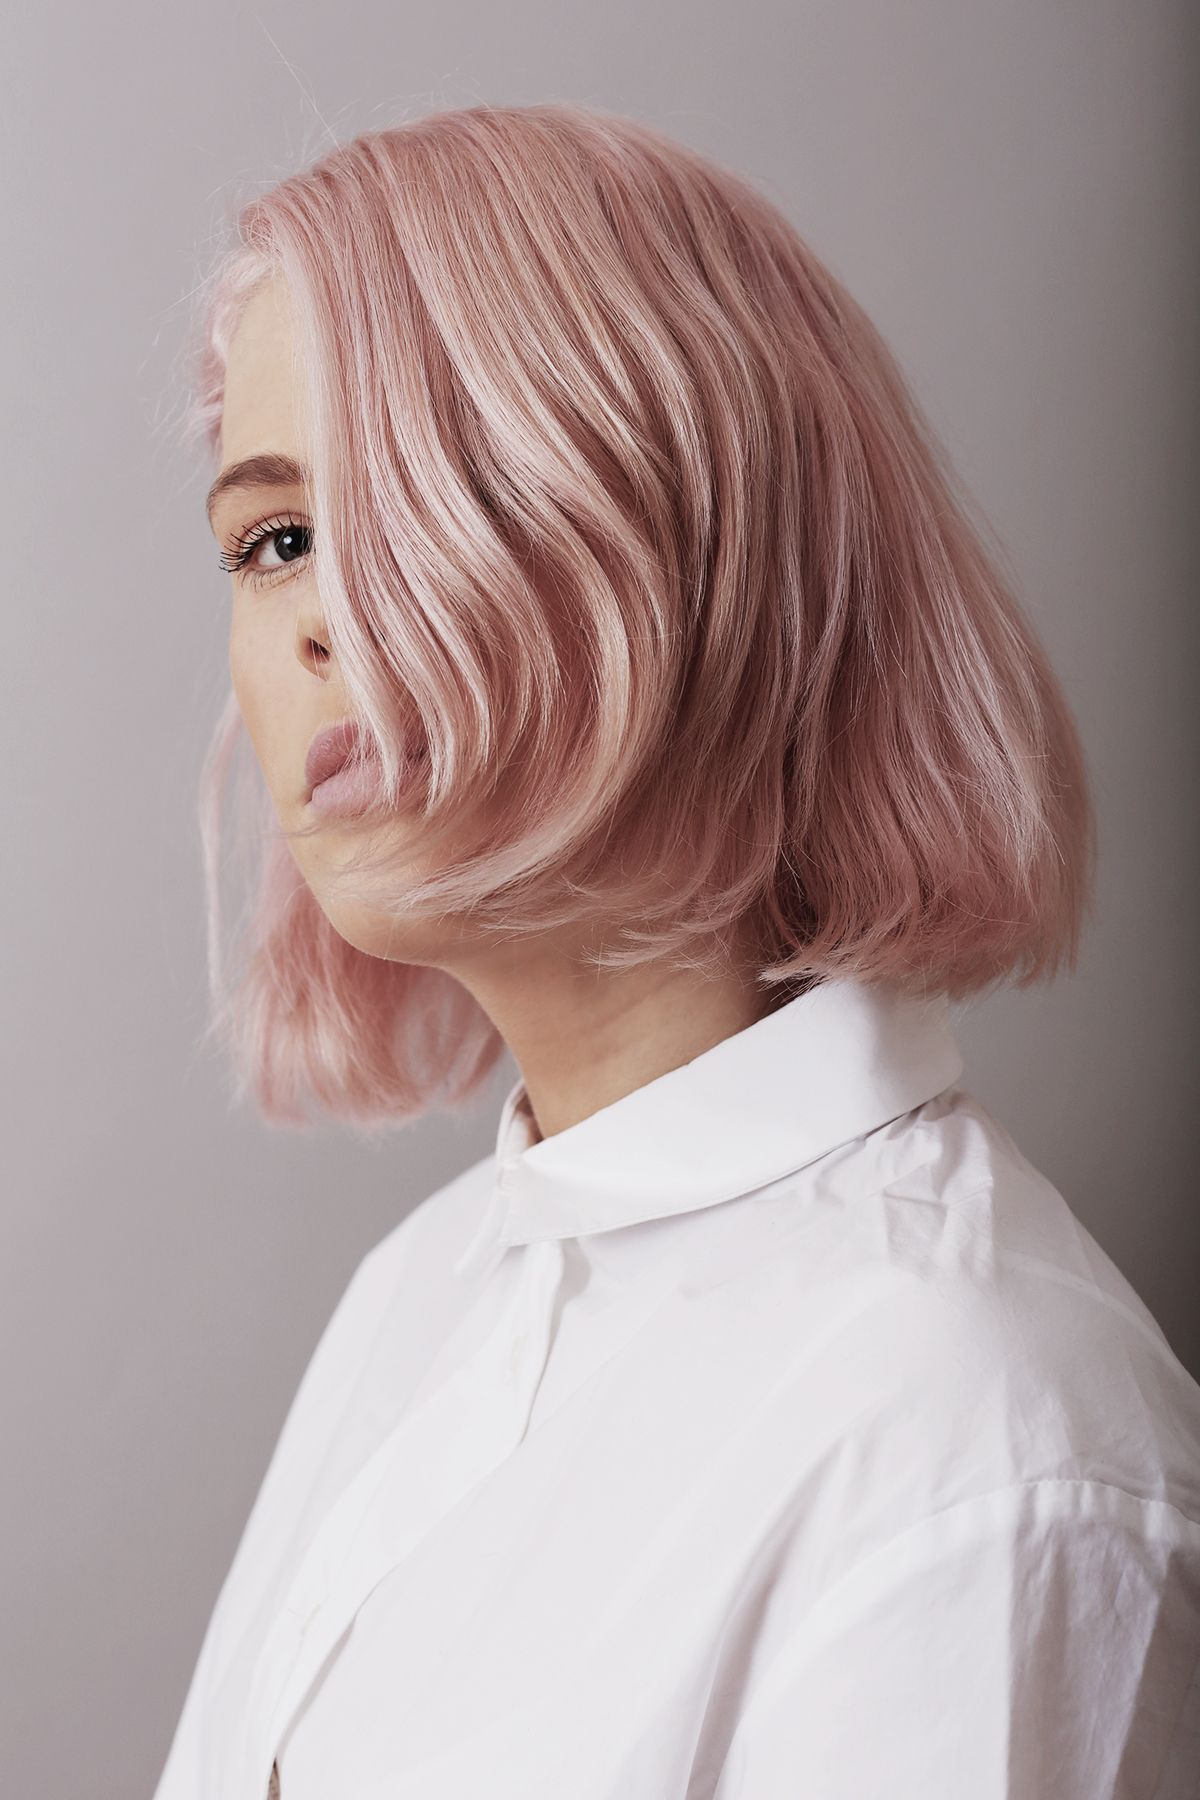 Pin by nuray pınarbaşı on saç pinterest pink hair salons and